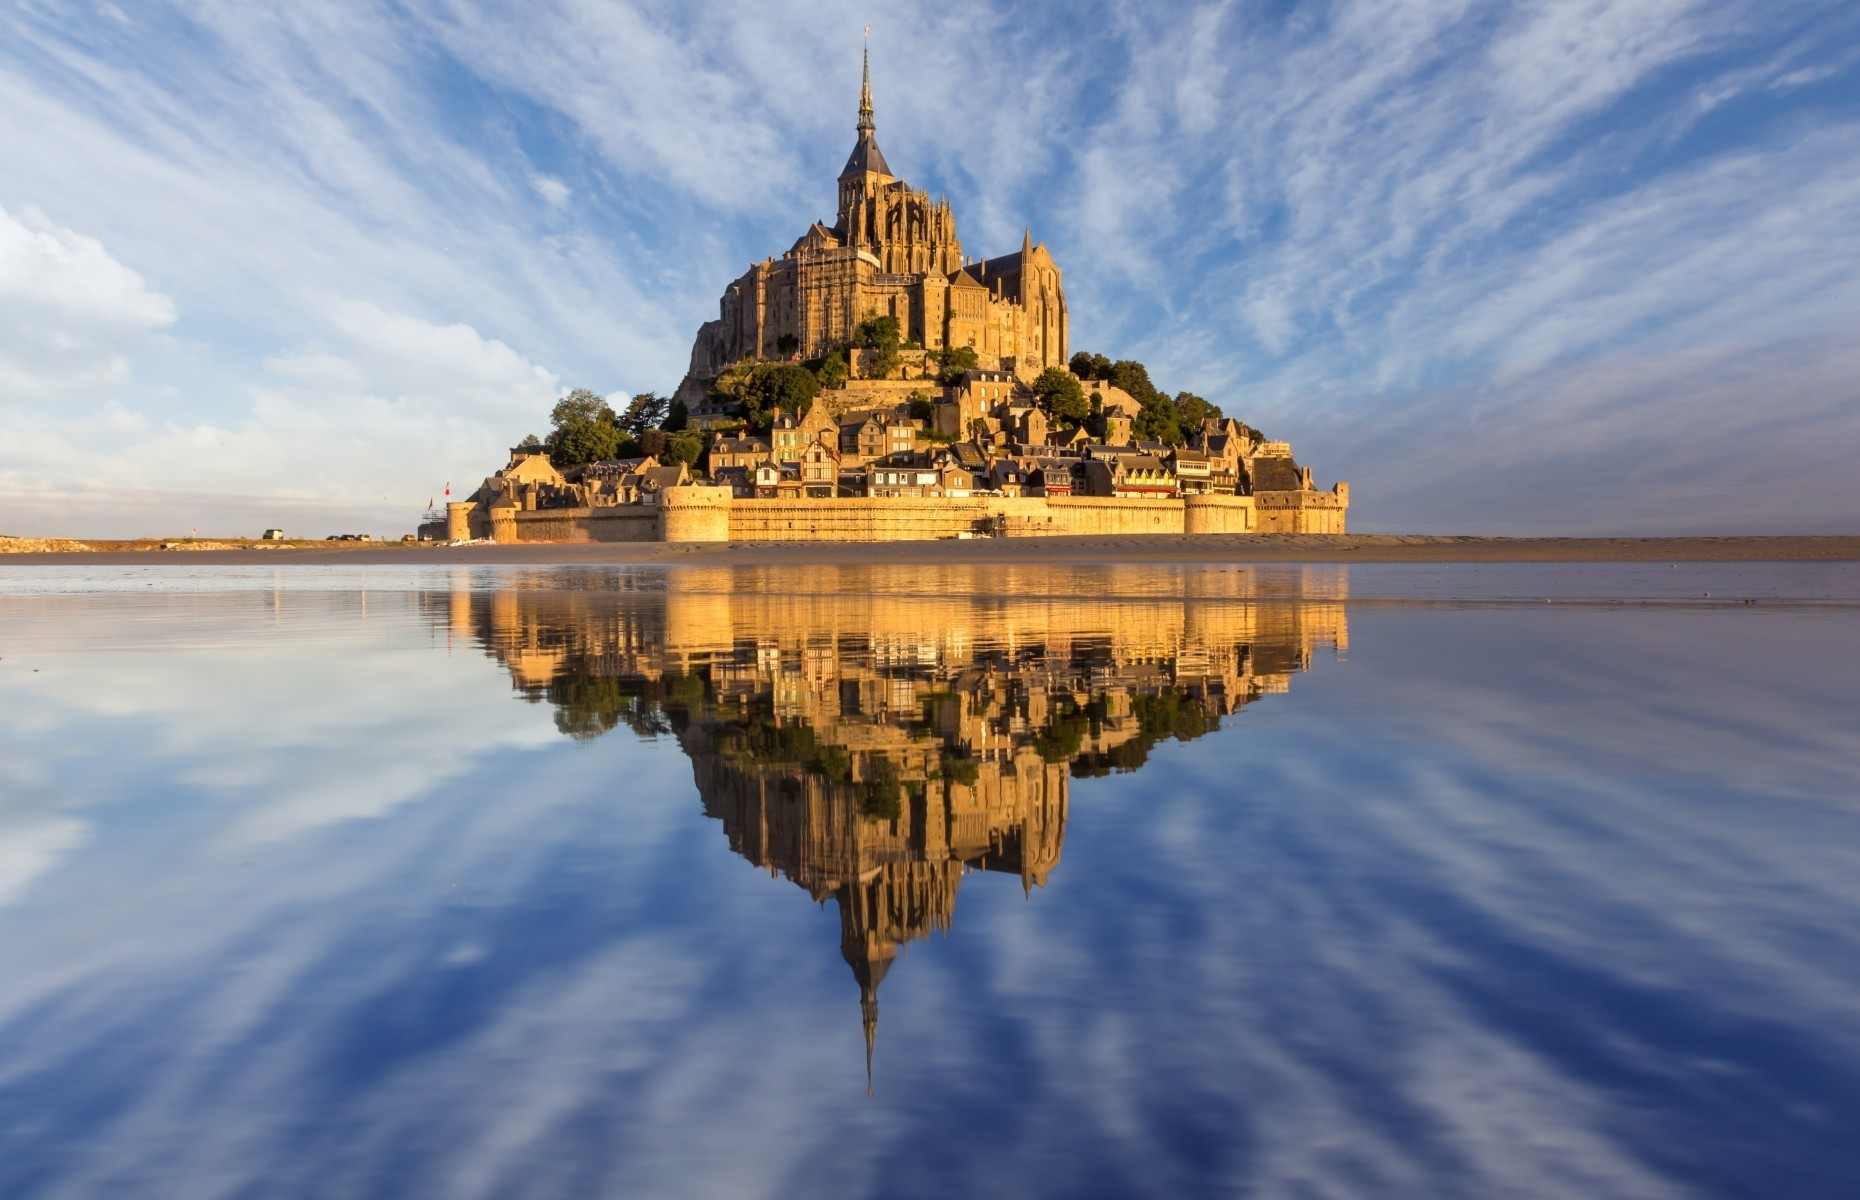 Slide 10 of 41: The makers of the movie Tangled drew inspiration from France's famous Mont-Saint-Michel when creating the kingdom of Corona.